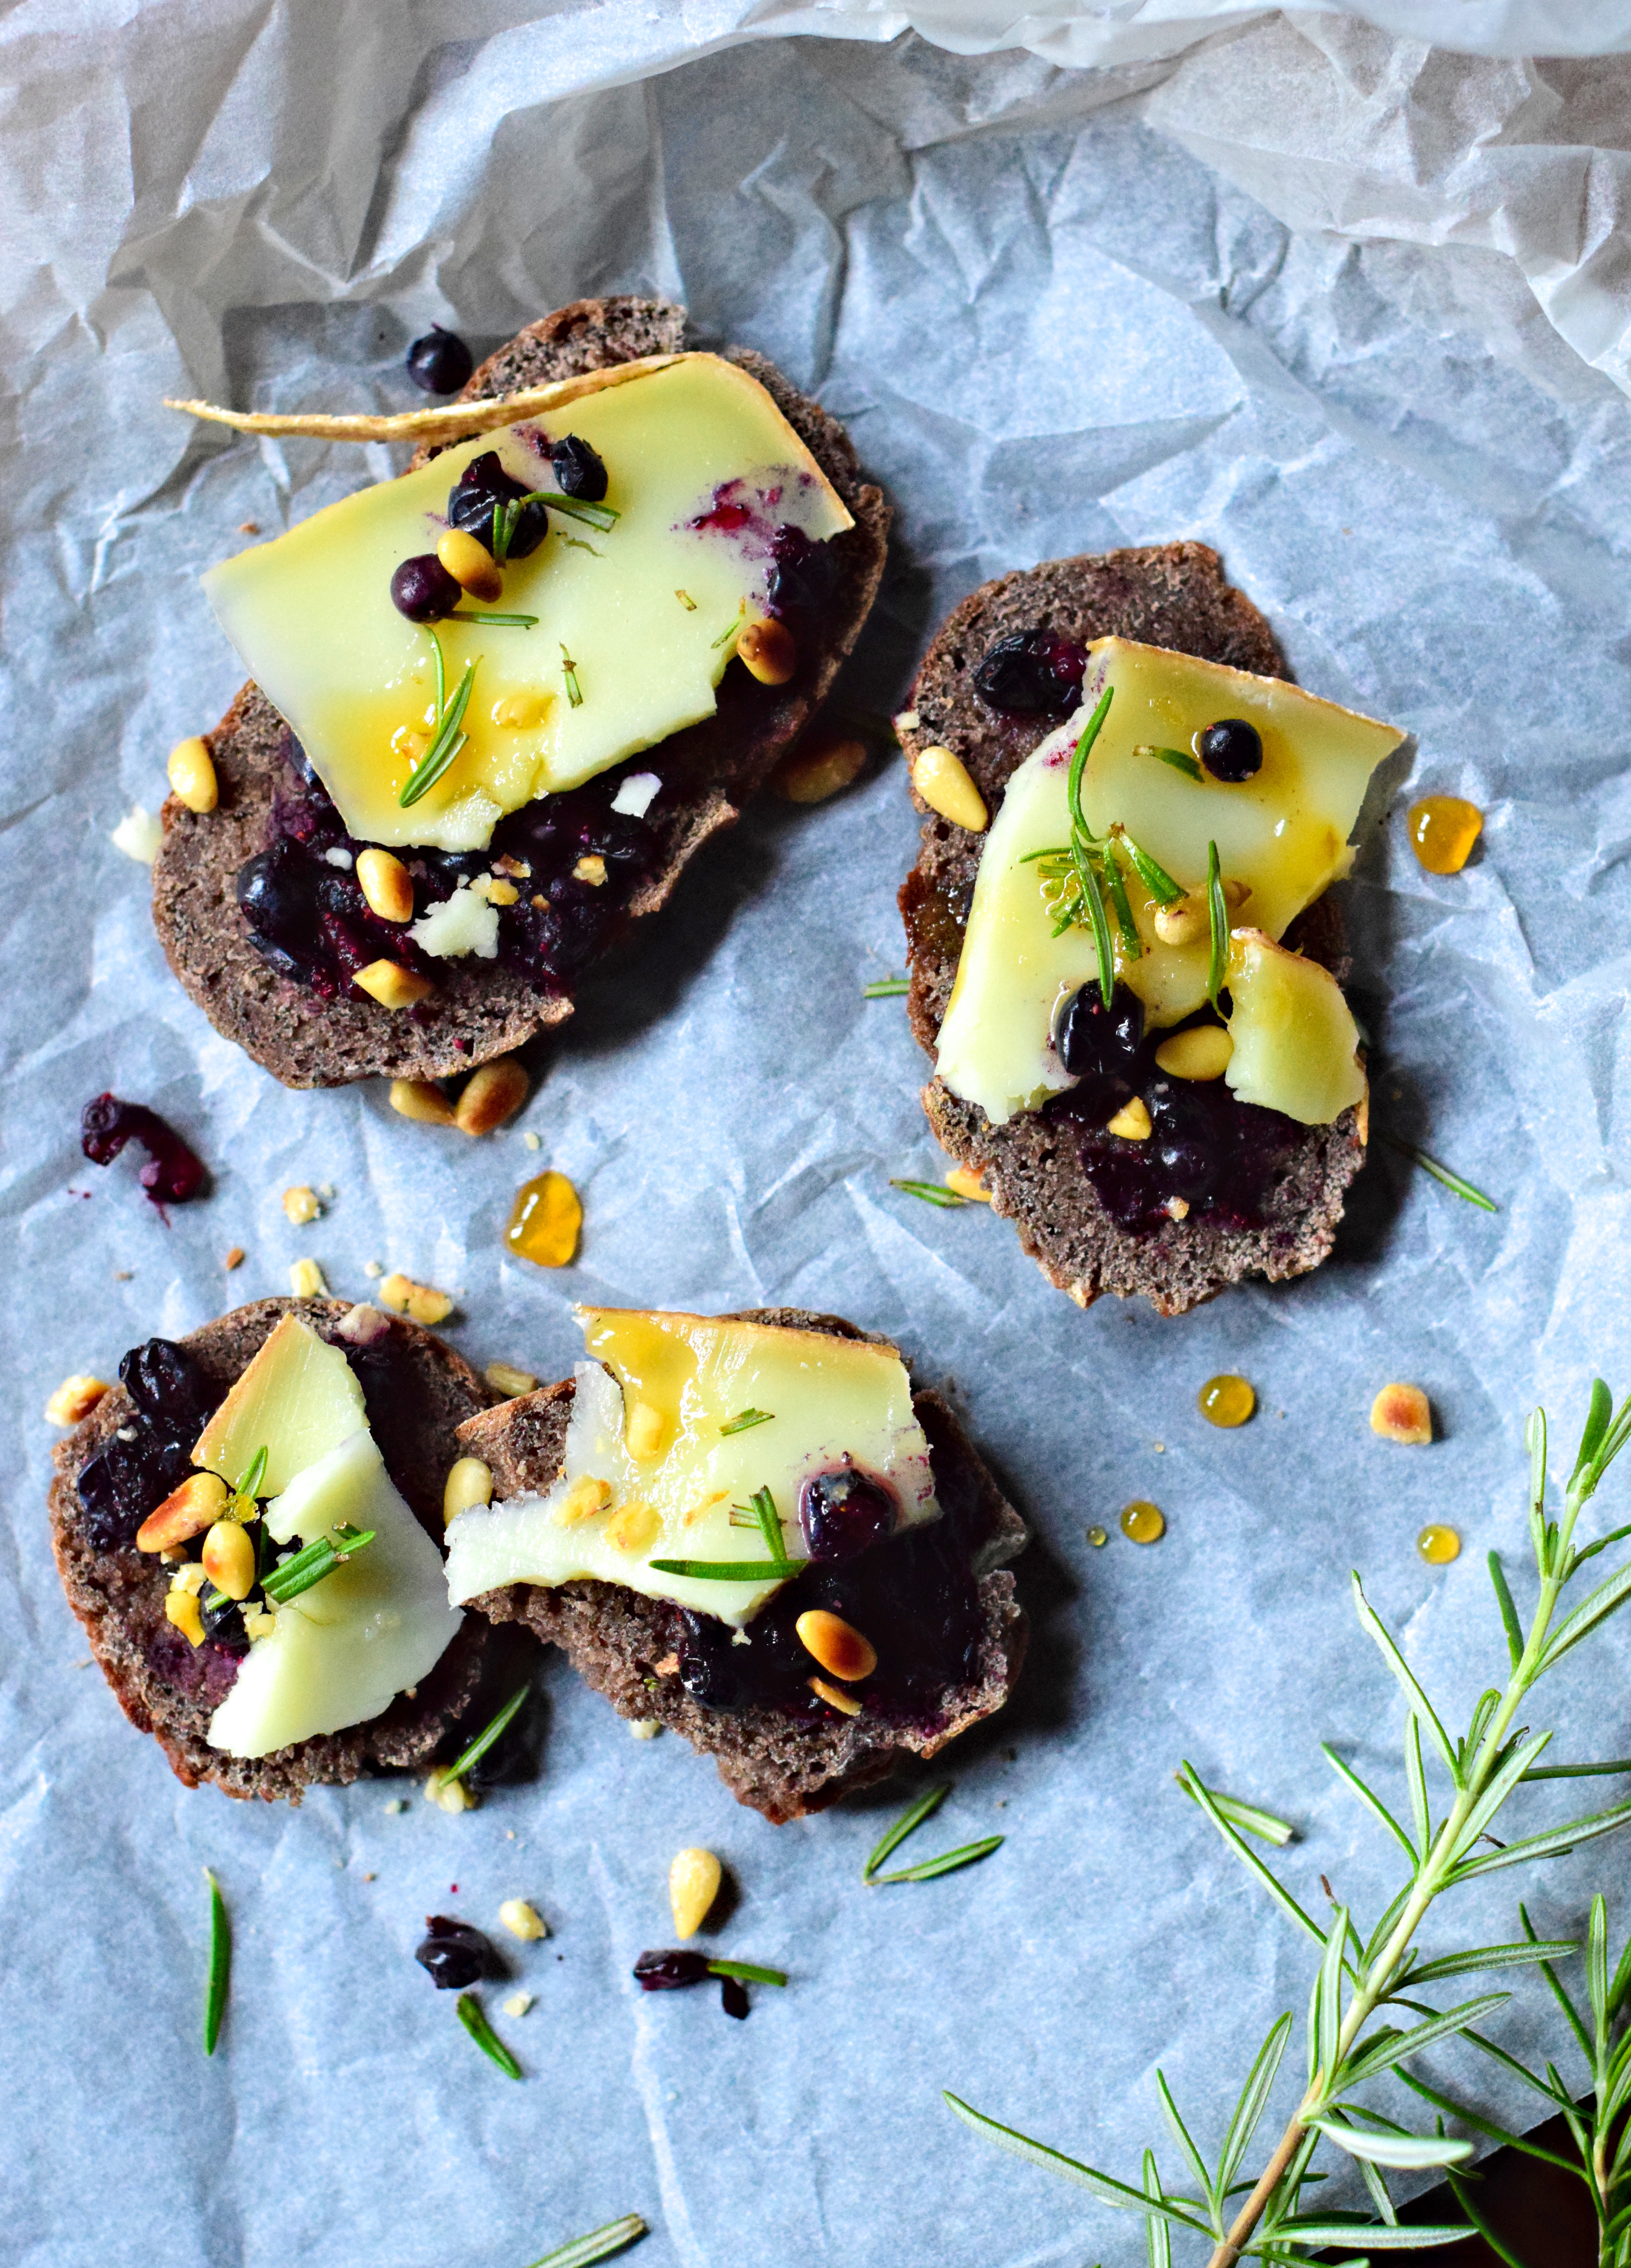 Buckwheat toasts with rosemary, sheep cheese & wild blueberries